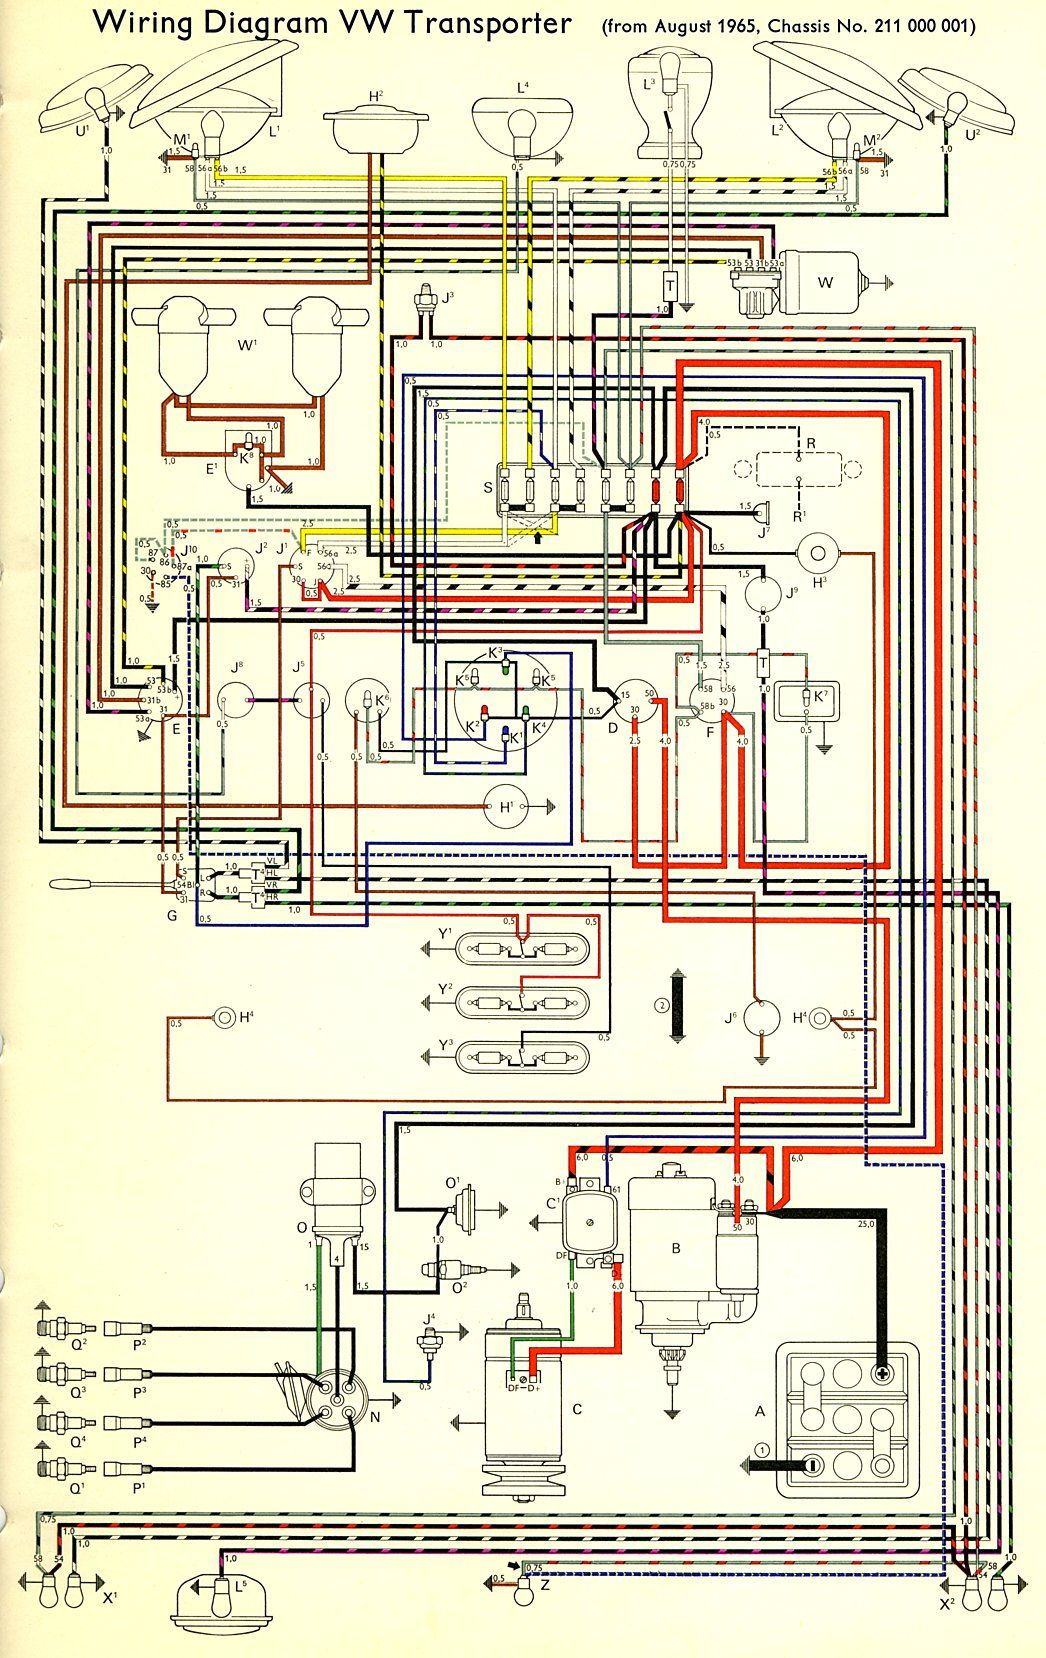 wiring diagram vw transporter the samba diagram wire the samba the o [ 1046 x 1658 Pixel ]